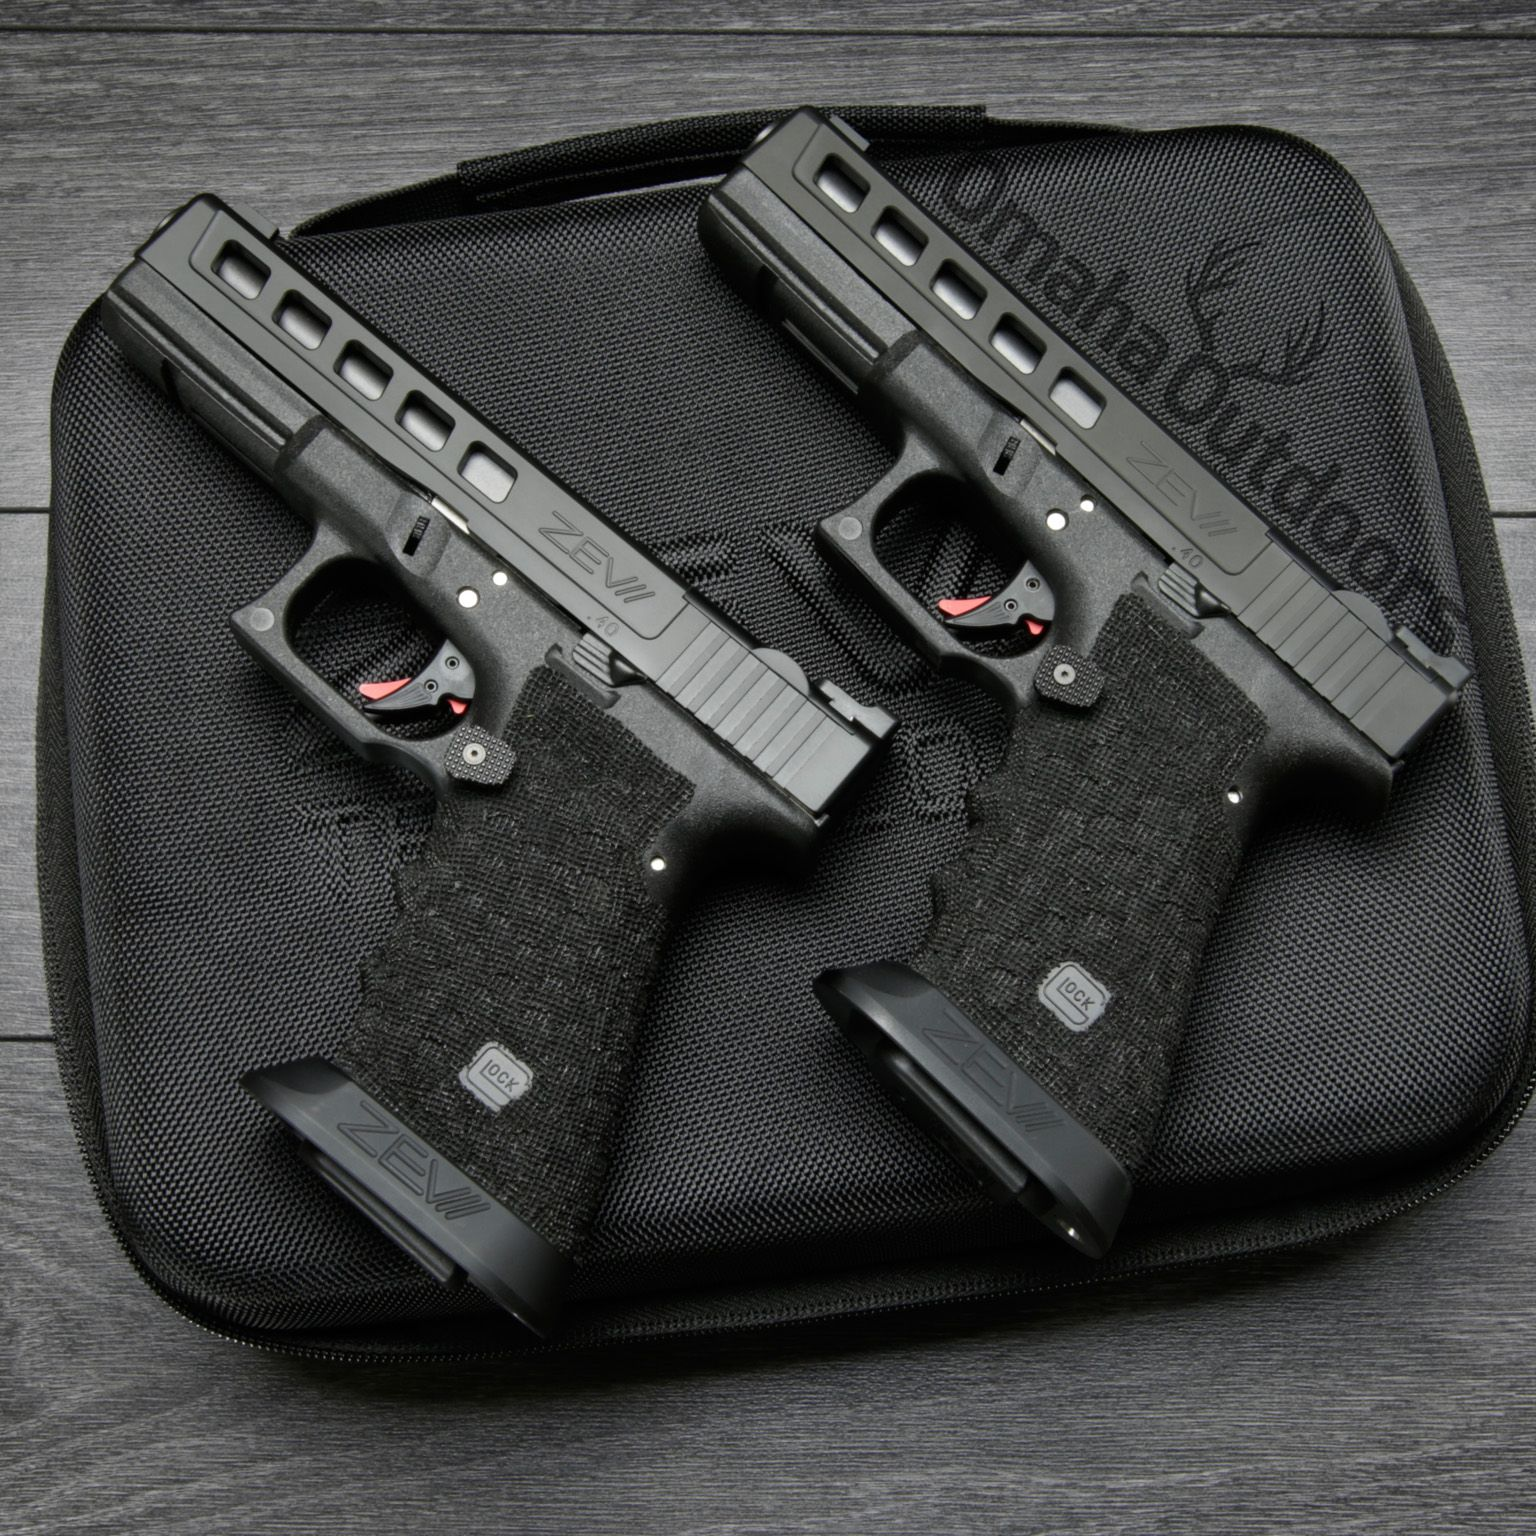 ZEV Technologies Glock 22 Dragonfly Pistols  Includes 9mm